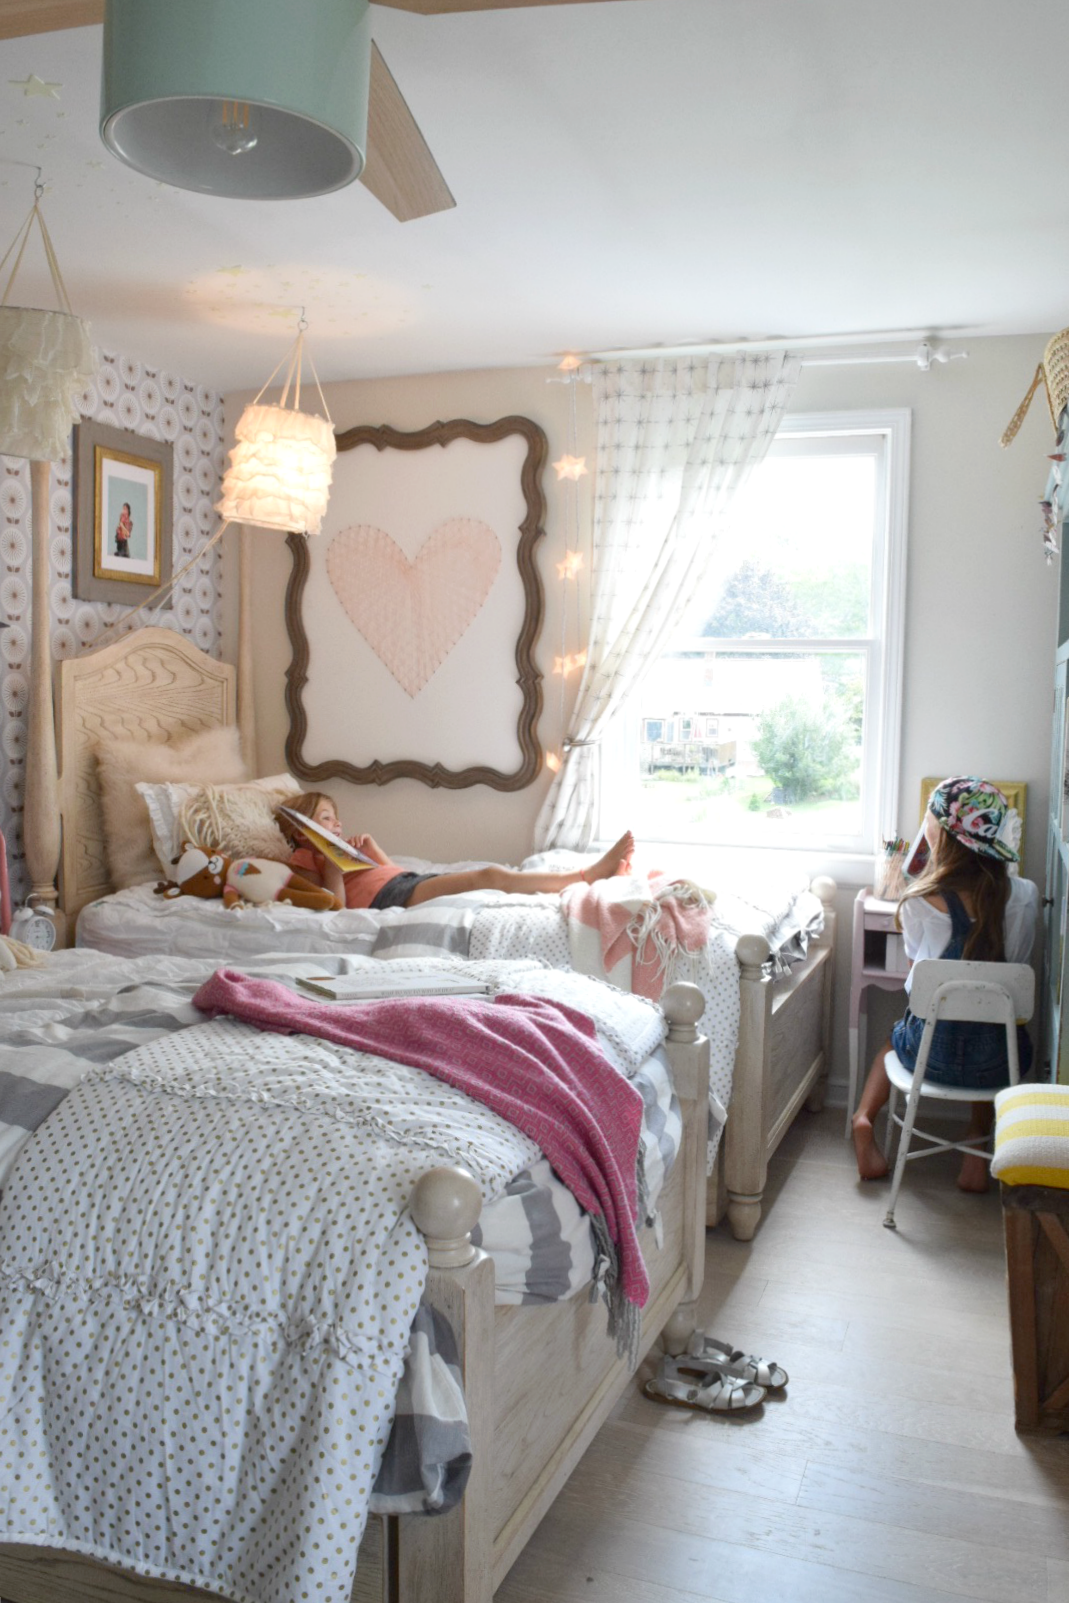 Girls Shared Bedroom- Easiest Way To Add Character with Wallpaper 029